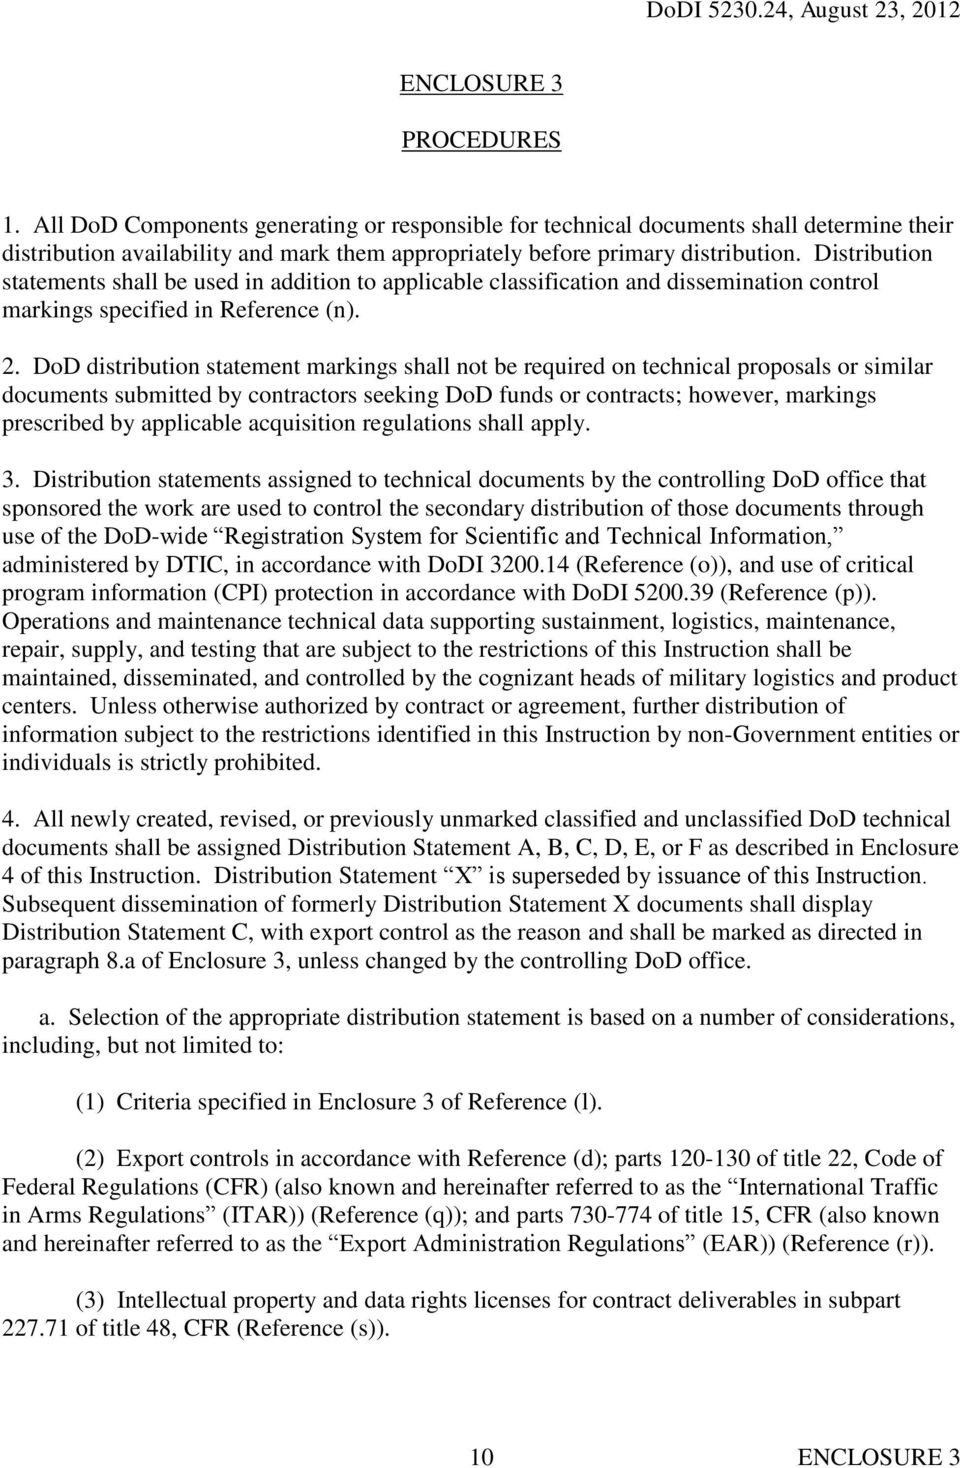 DoD distribution statement markings shall not be required on technical proposals or similar documents submitted by contractors seeking DoD funds or contracts; however, markings prescribed by